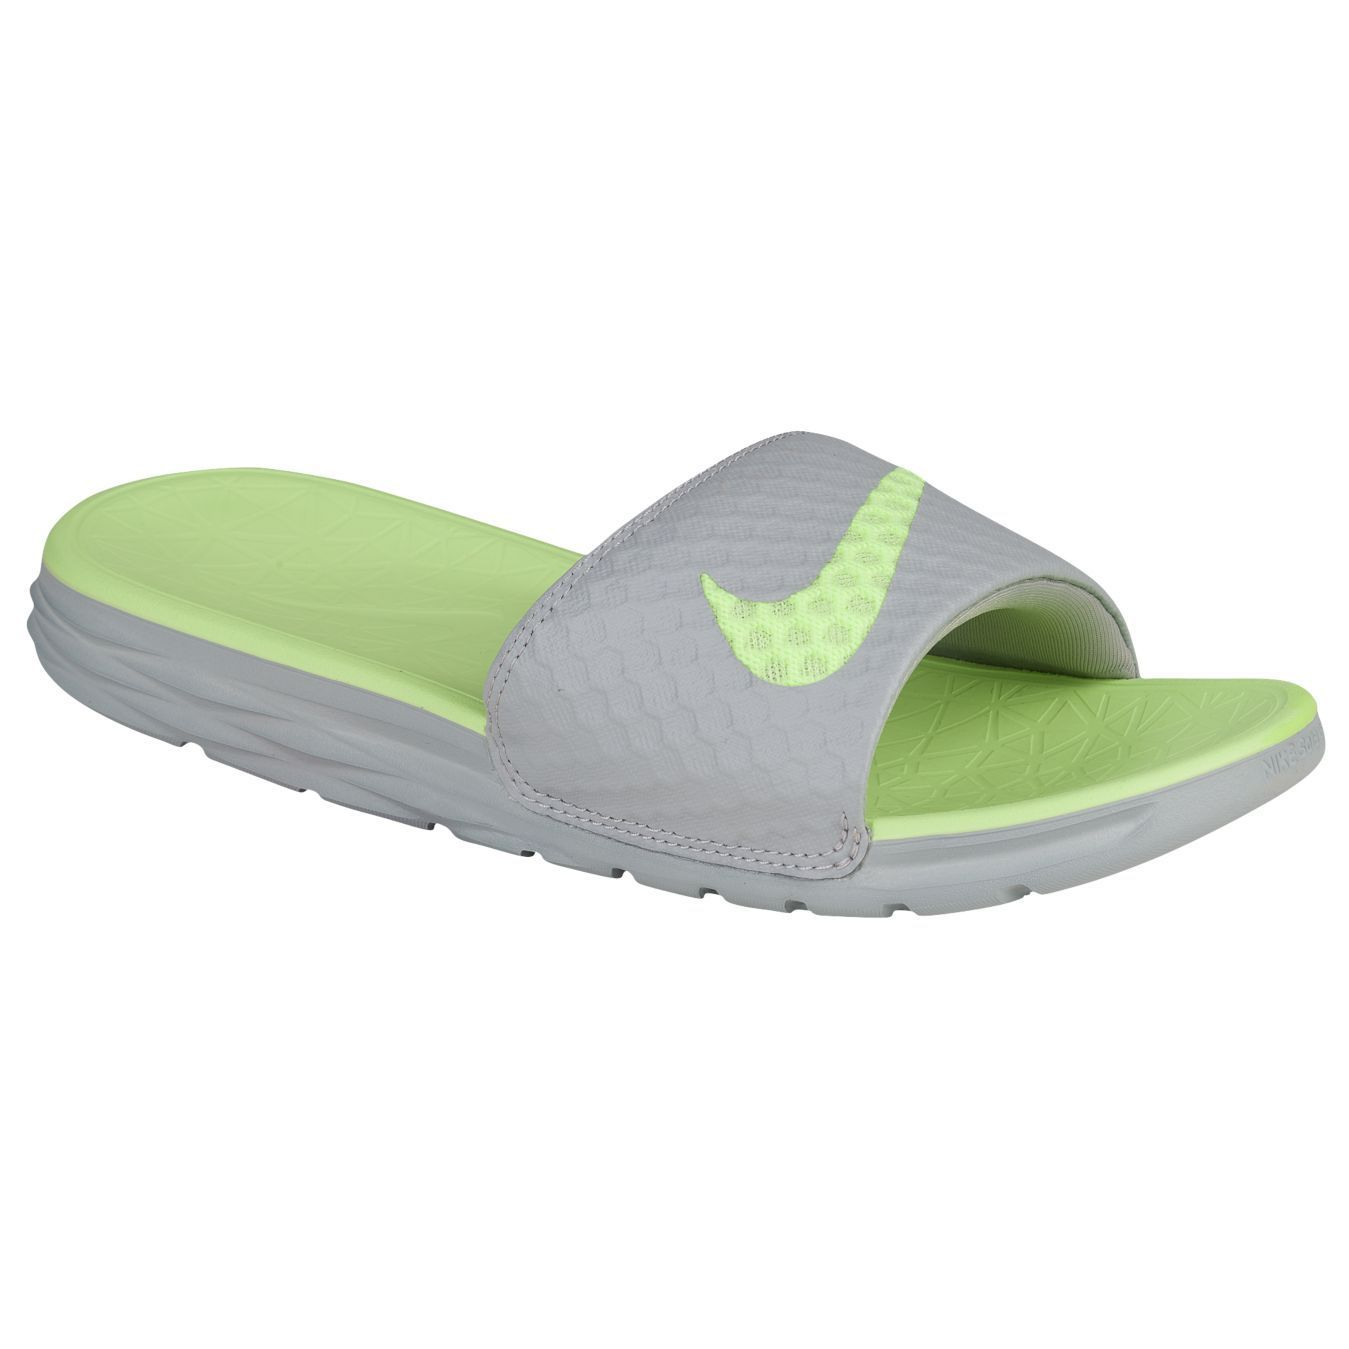 Elegant Nike Benassi Solarsoft - Womens Slides - Black/Grey Online | Sportitude